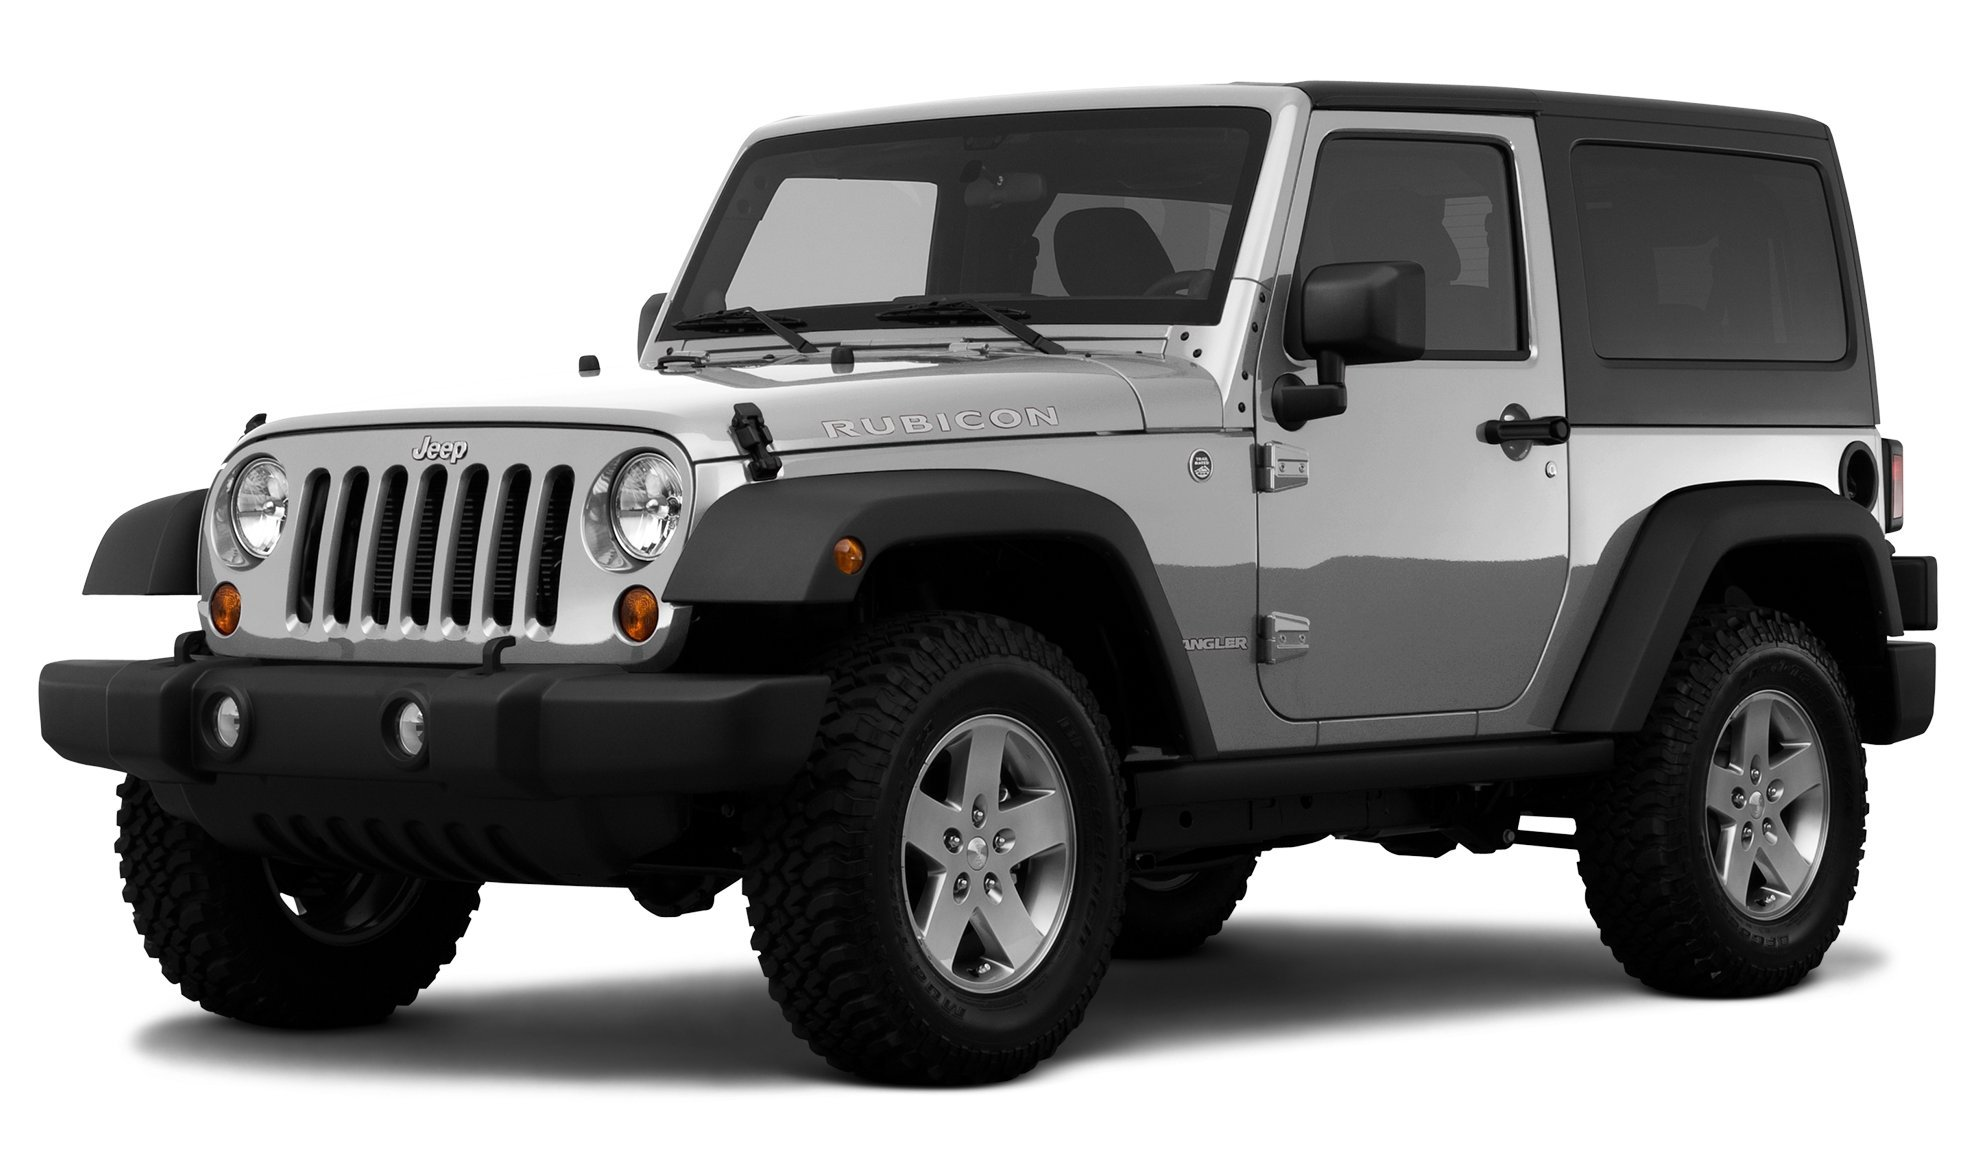 2012 jeep wrangler reviews images and specs vehicles. Black Bedroom Furniture Sets. Home Design Ideas